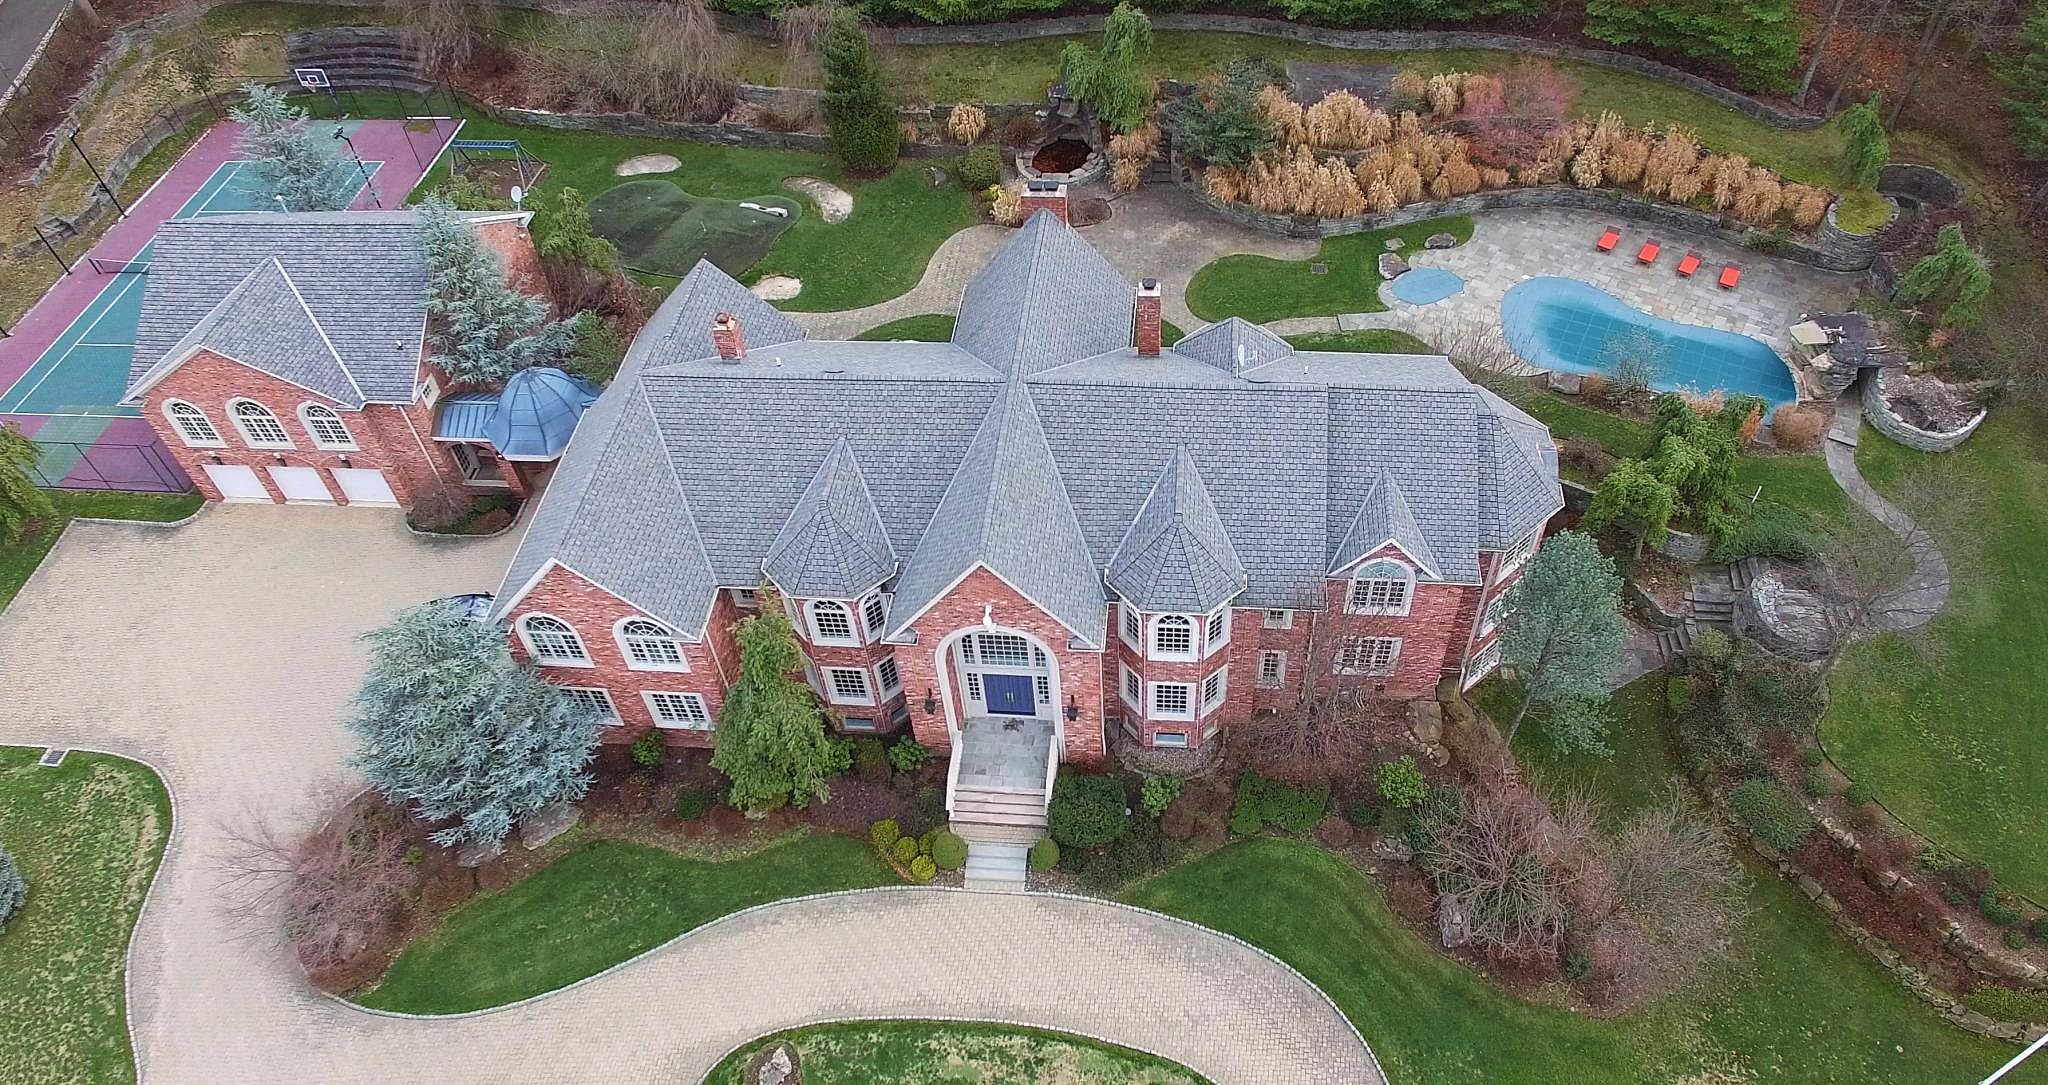 for $8m, you can buy this nj house from sean 'diddy' combs